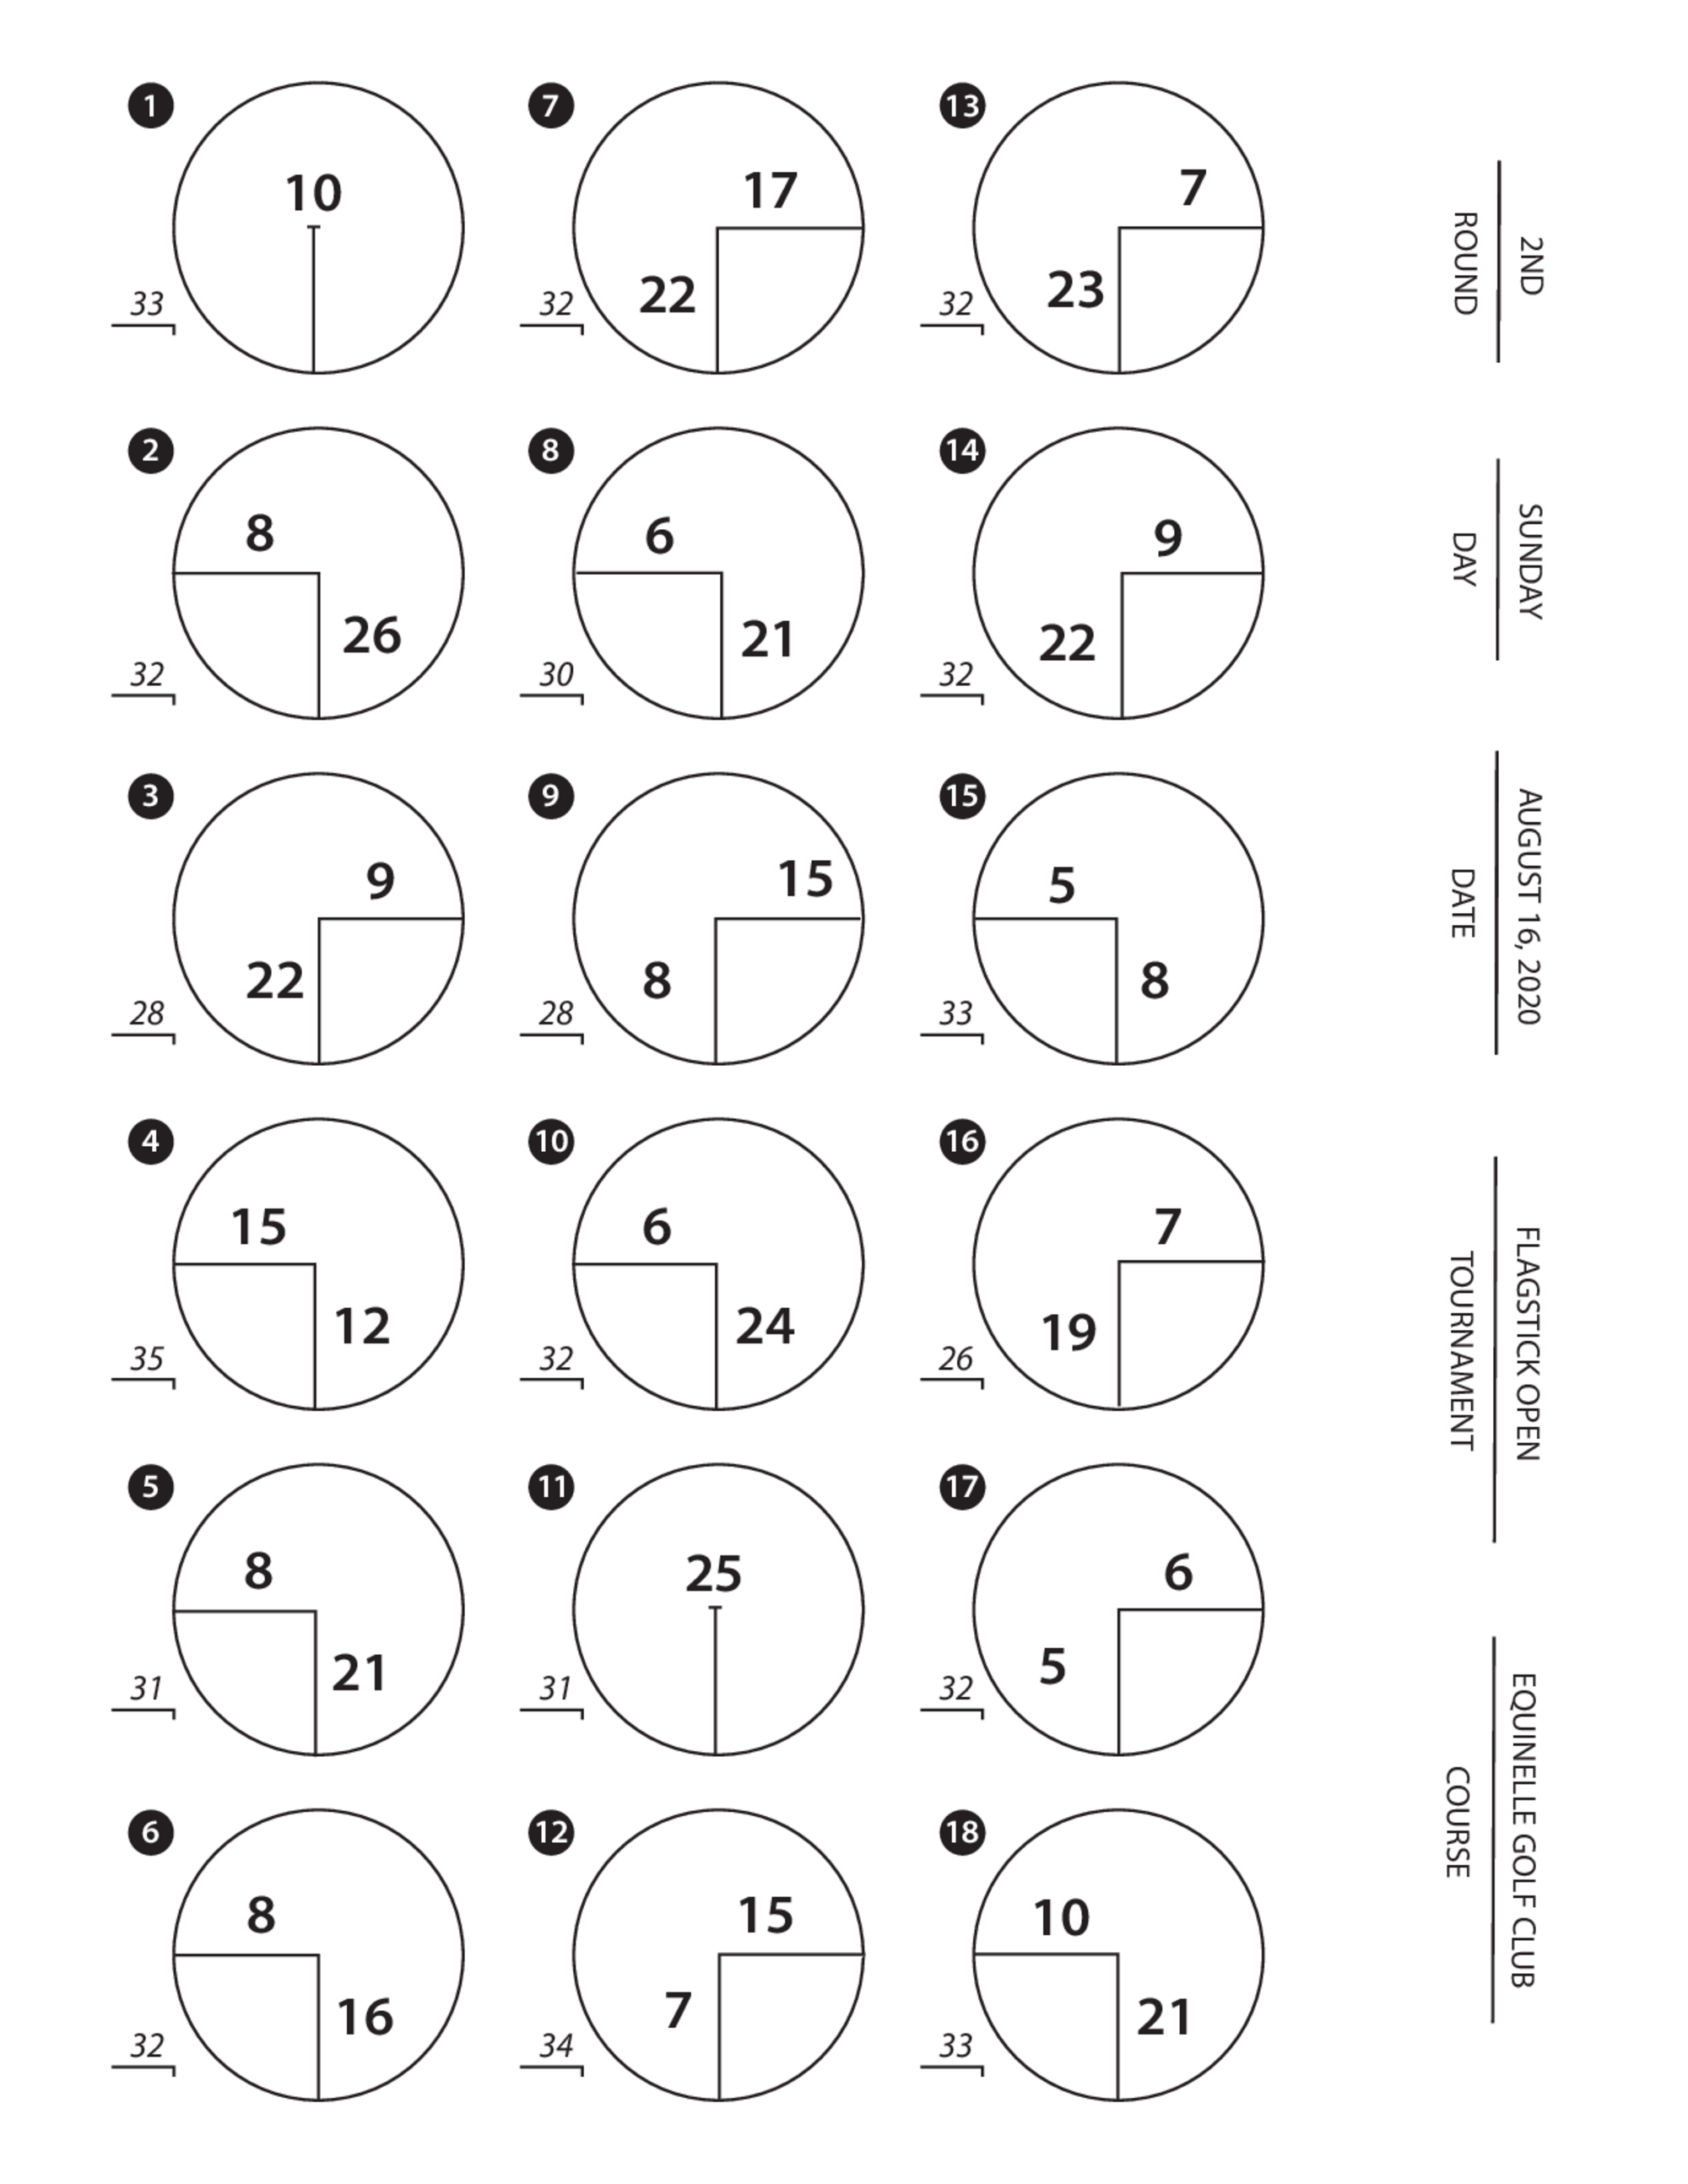 Flagstick open day 2 pin sheet 2020 1